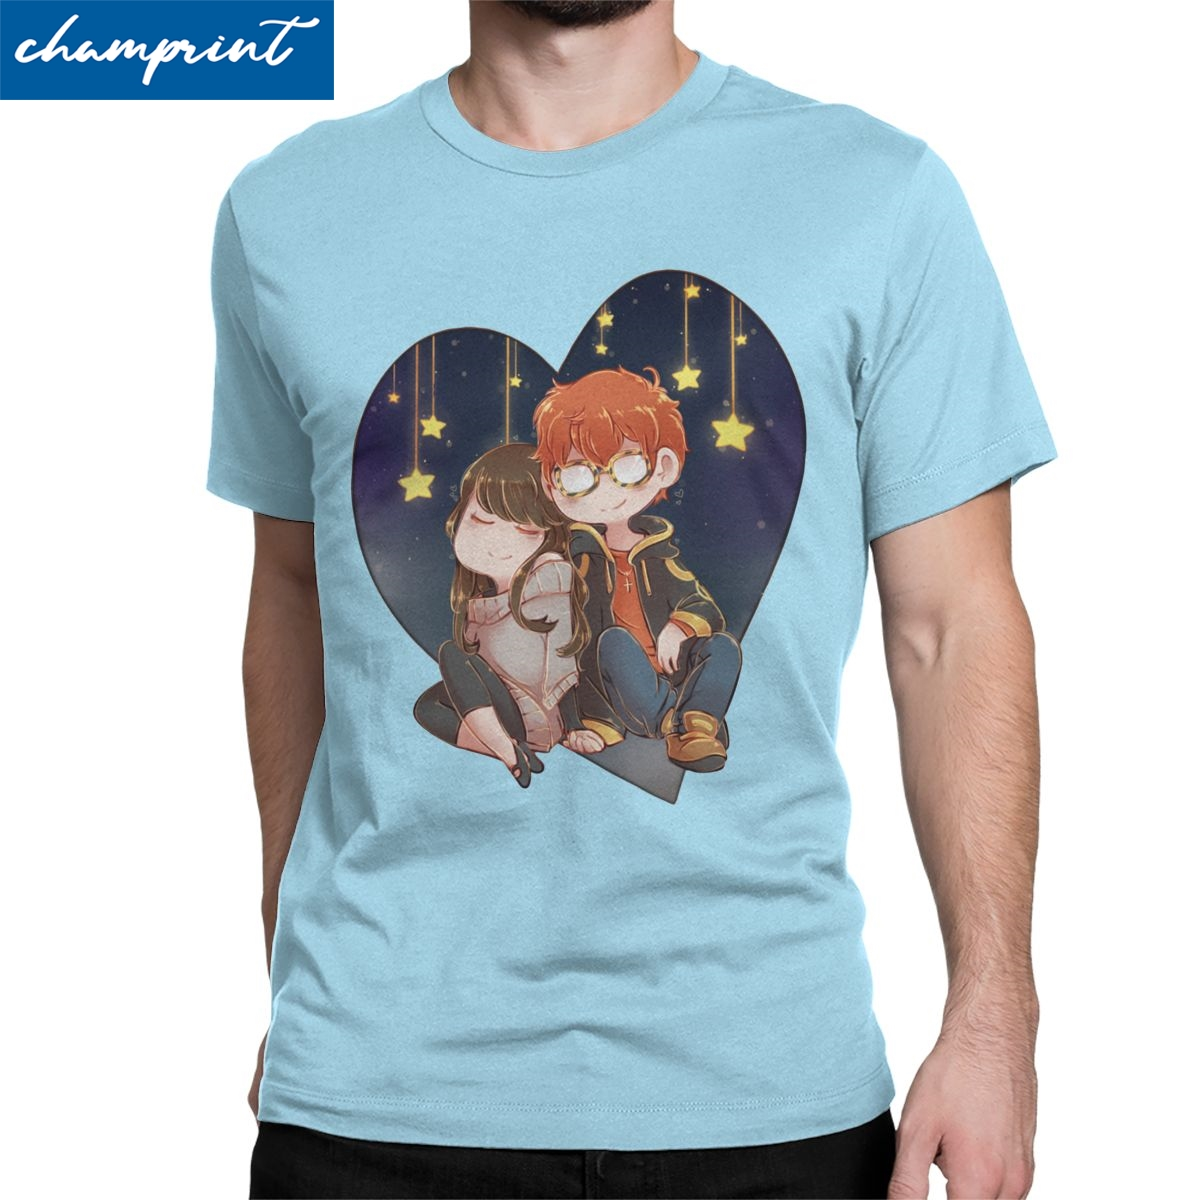 Men's Mystic Messenger 707 & <font><b>MC</b></font> <font><b>T</b></font> <font><b>Shirt</b></font> MM BG Otome Game Clothes Fashion Short Sleeve Round Collar Tees Plus Size <font><b>T</b></font>-<font><b>Shirt</b></font> image